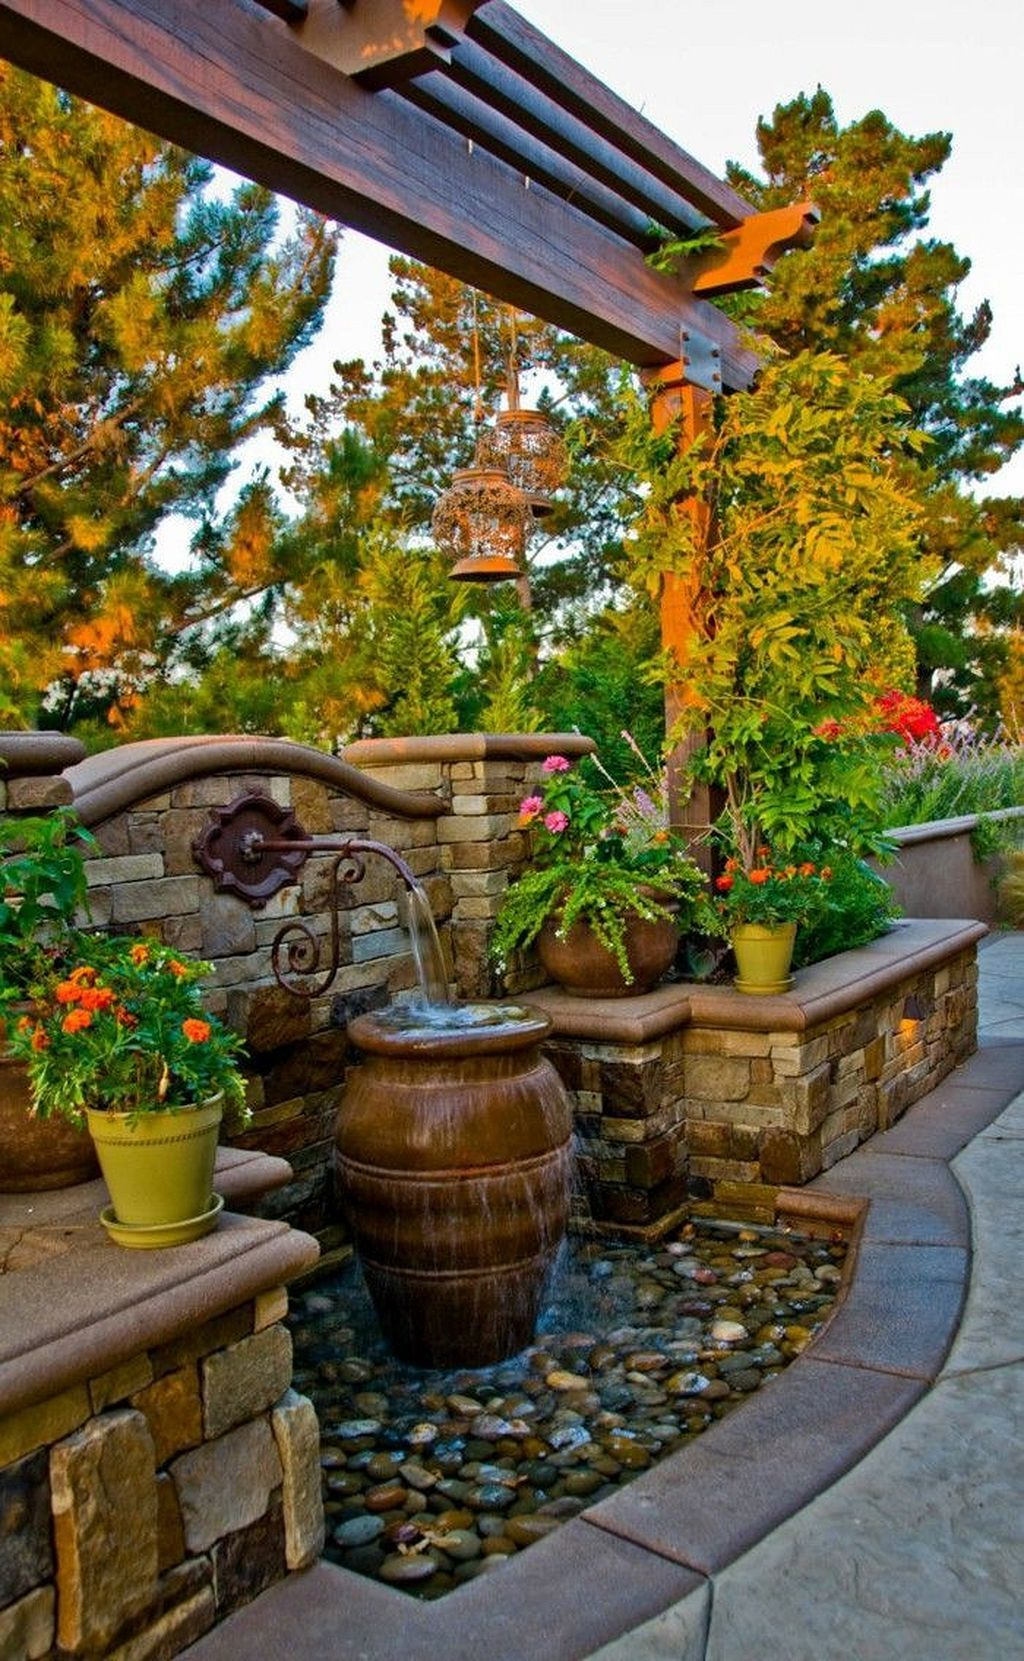 20 awesome backyard aquarium ideas will blow your mind in on awesome backyard garden landscaping ideas that looks amazing id=64353